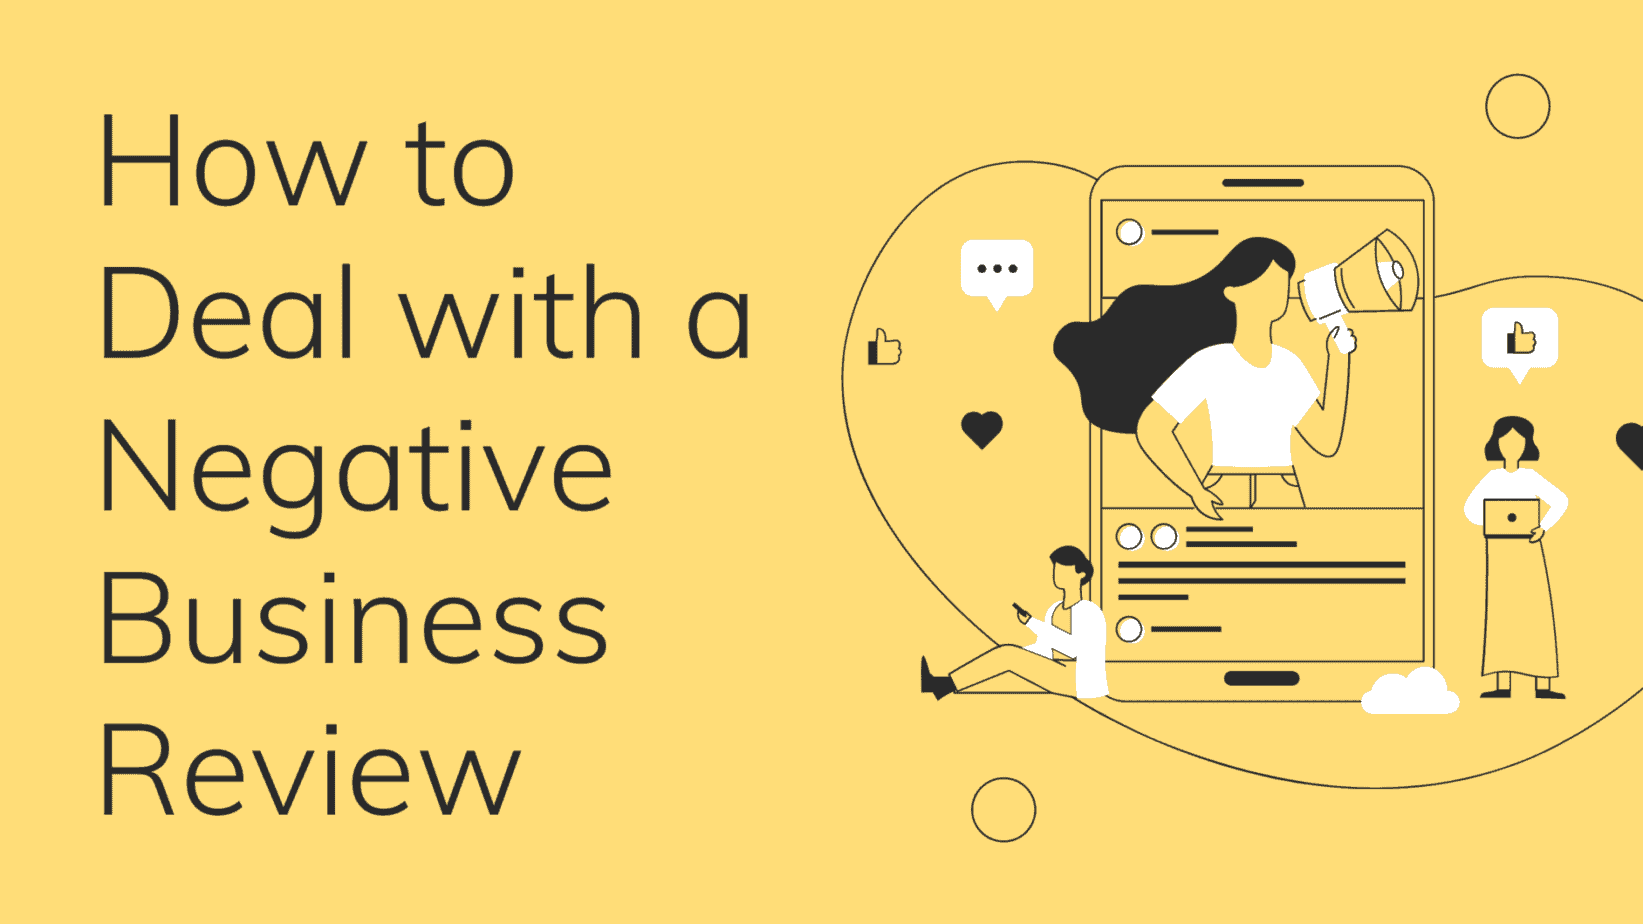 How to Deal with a Negative Business Review